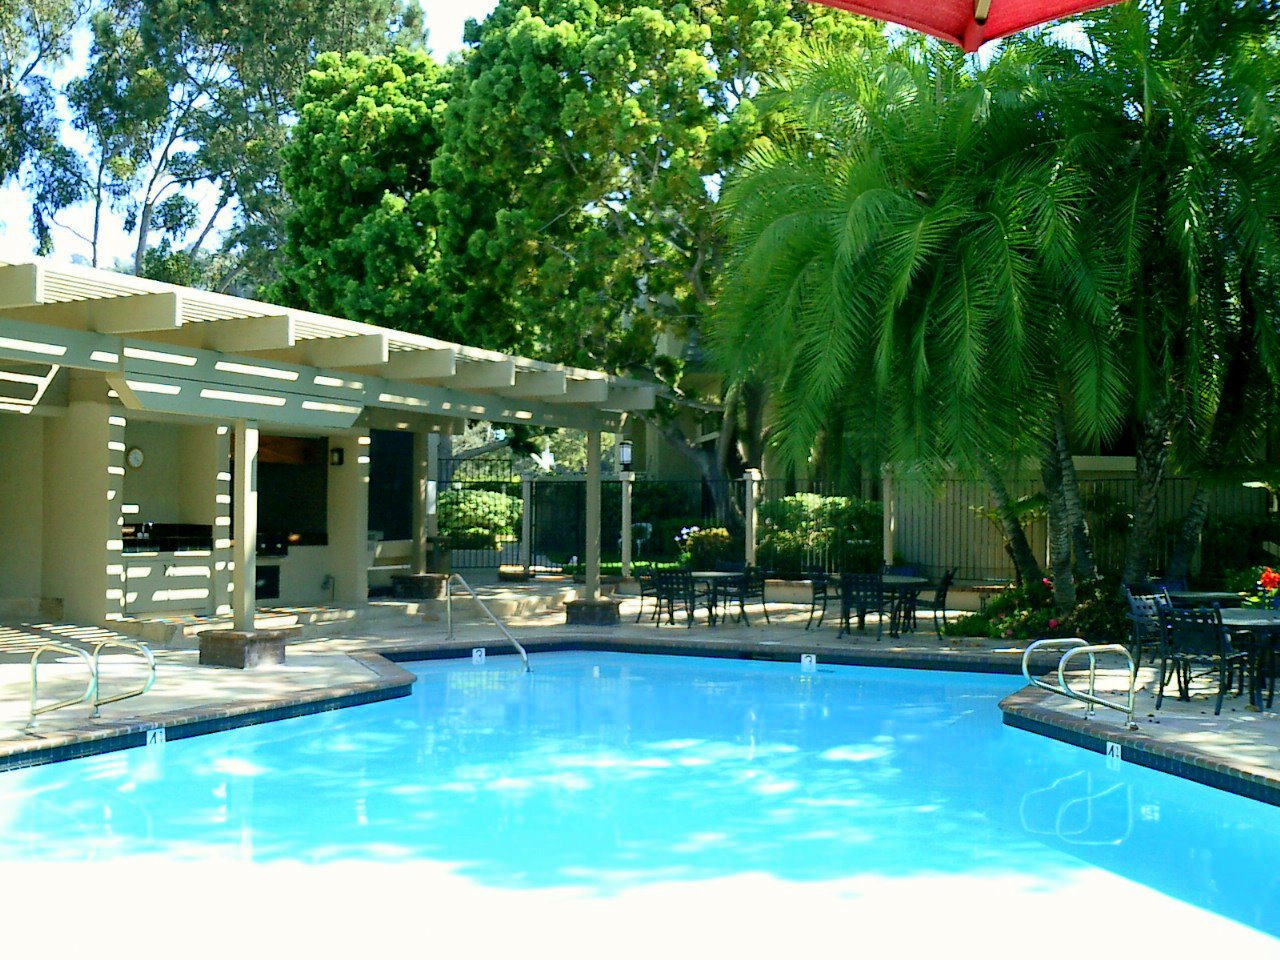 Our beautiful pool and spa